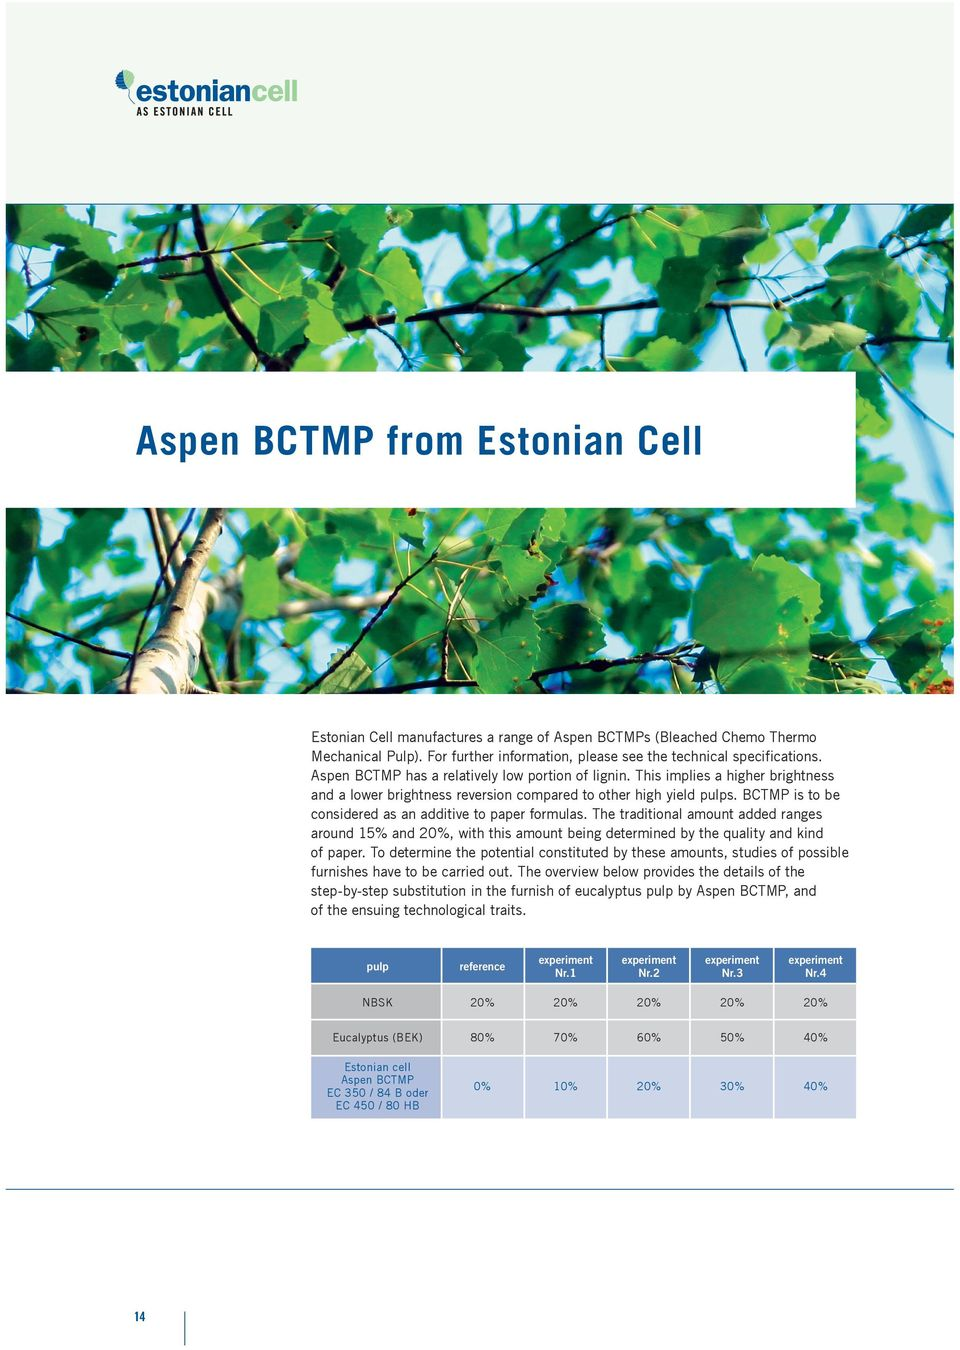 BCTMP is to be considered as an additive to paper formulas. The traditional amount added ranges around 15% and 20%, with this amount being determined by the quality and kind of paper.